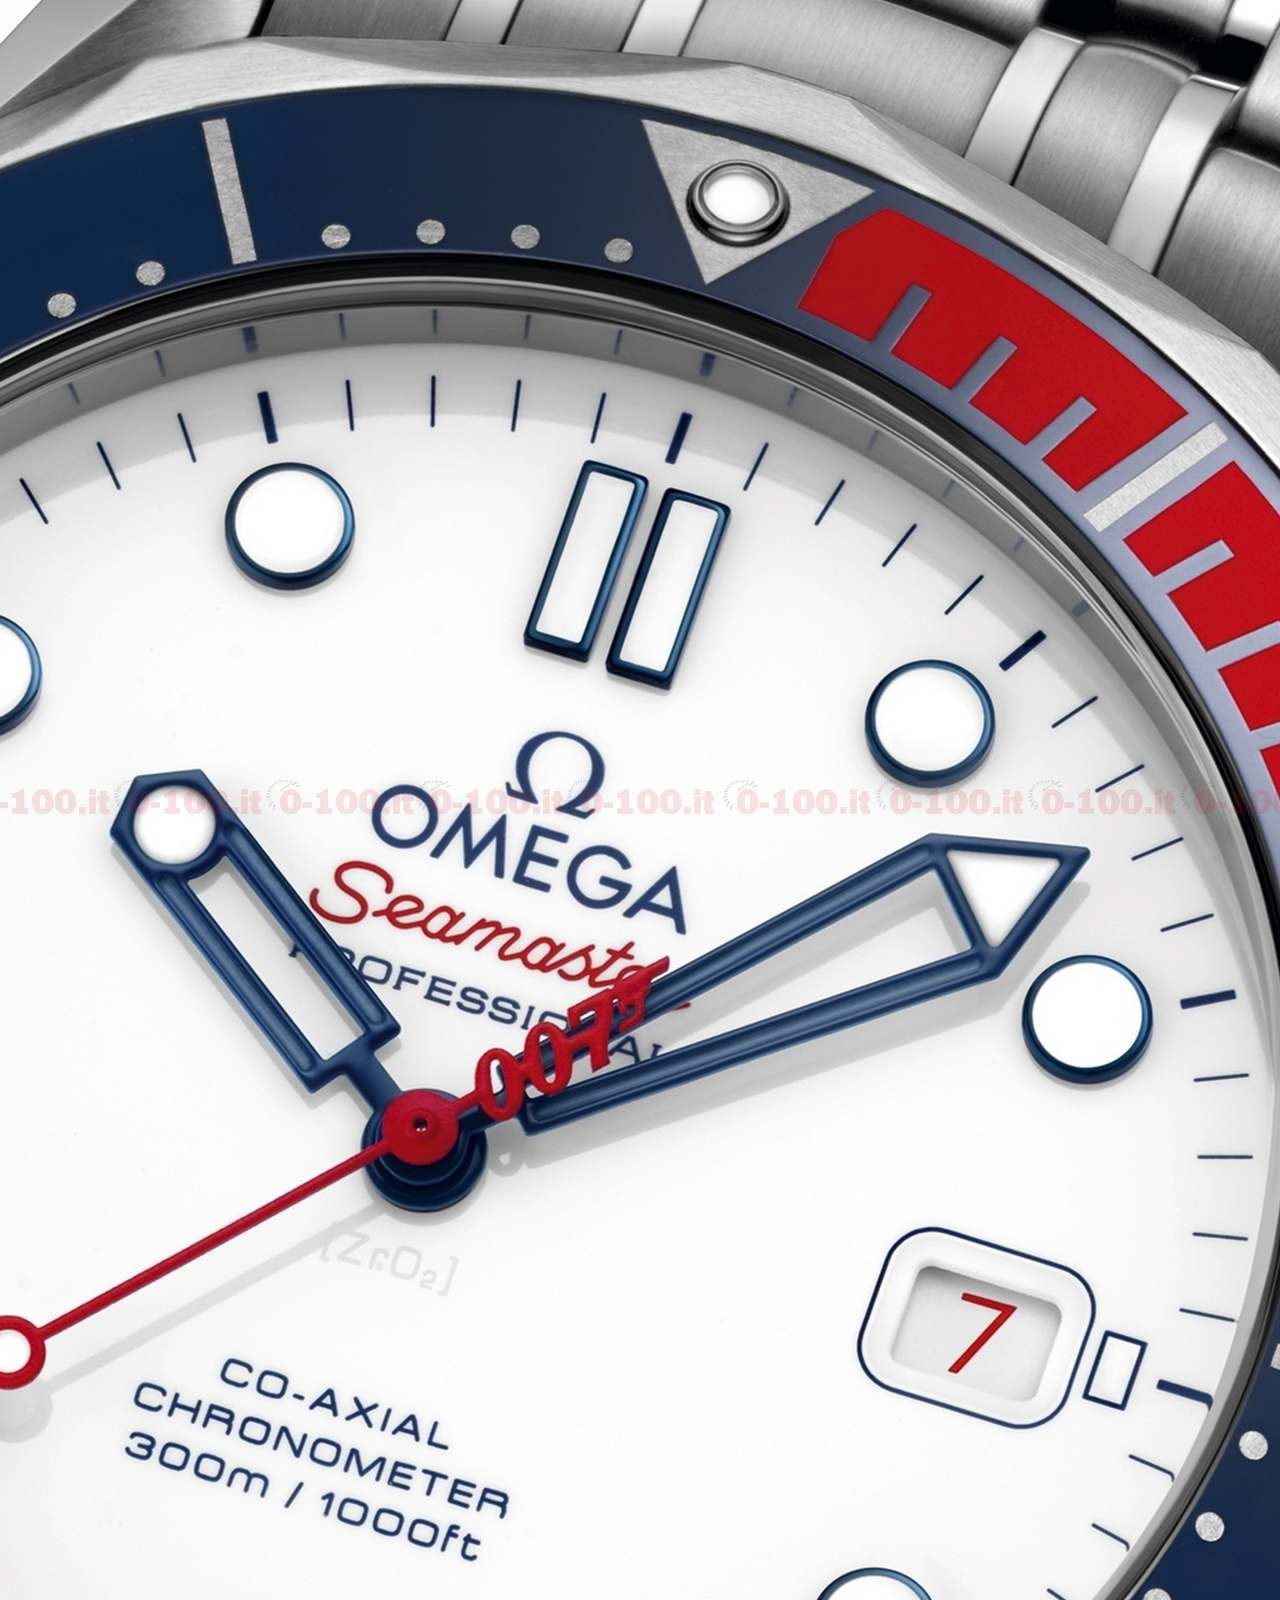 """Omega Seamaster Diver 300M """"Commander's Watch"""" Limited Edition_0-1005"""